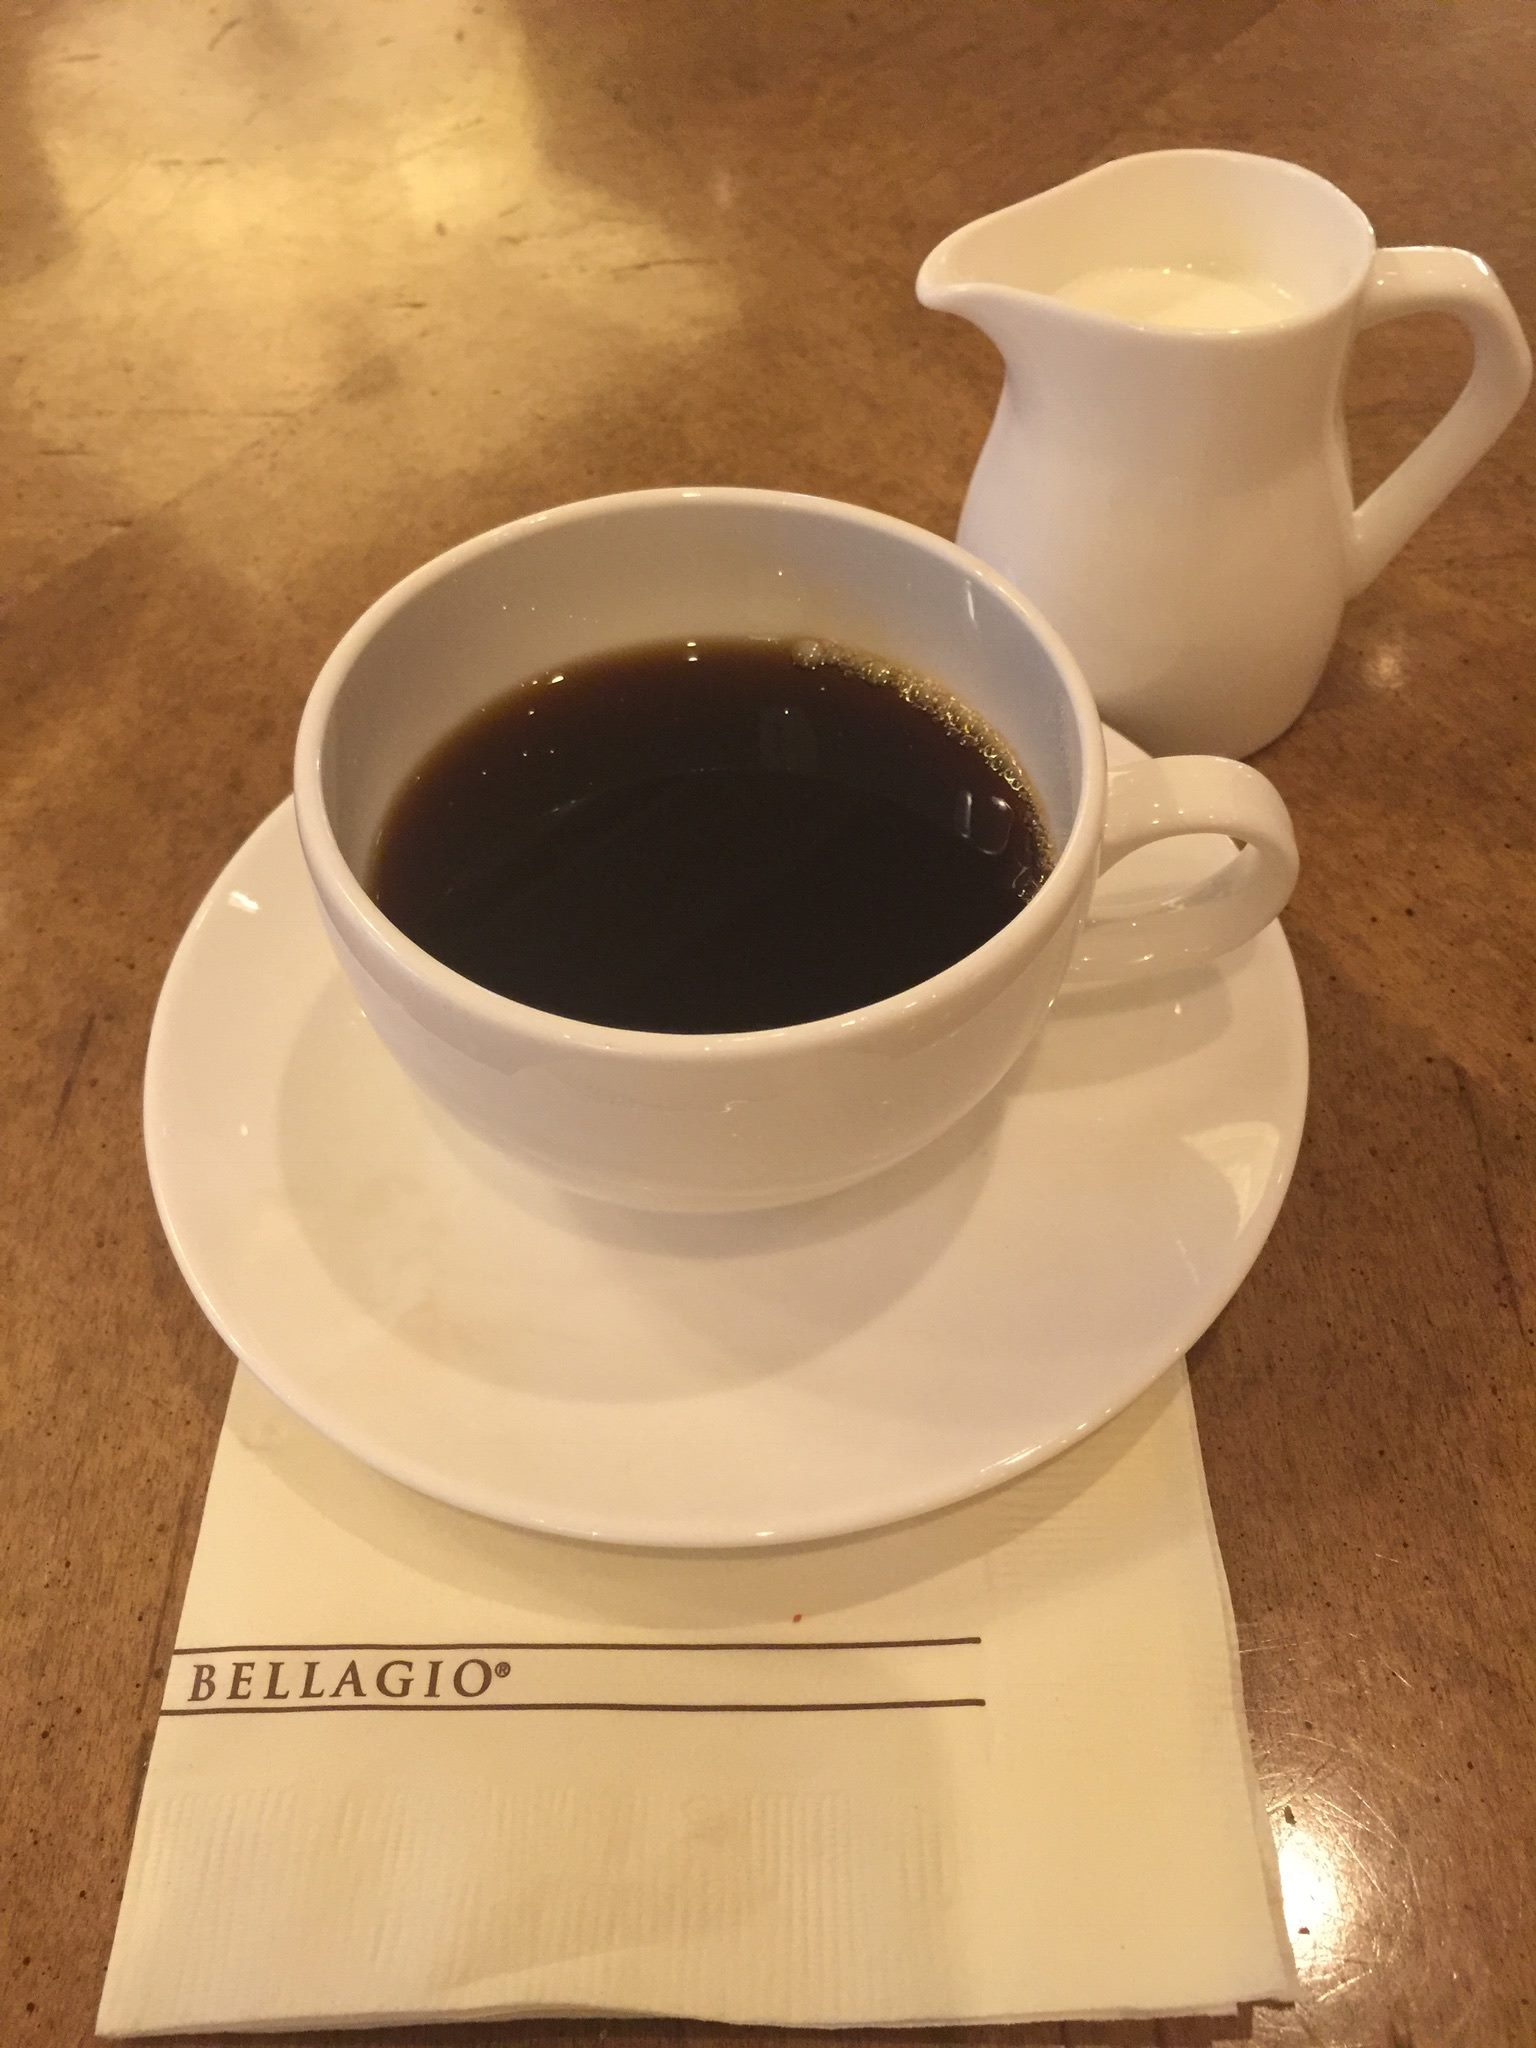 Picture of coffee-filled cup and saucer on top of Bellagio napkin